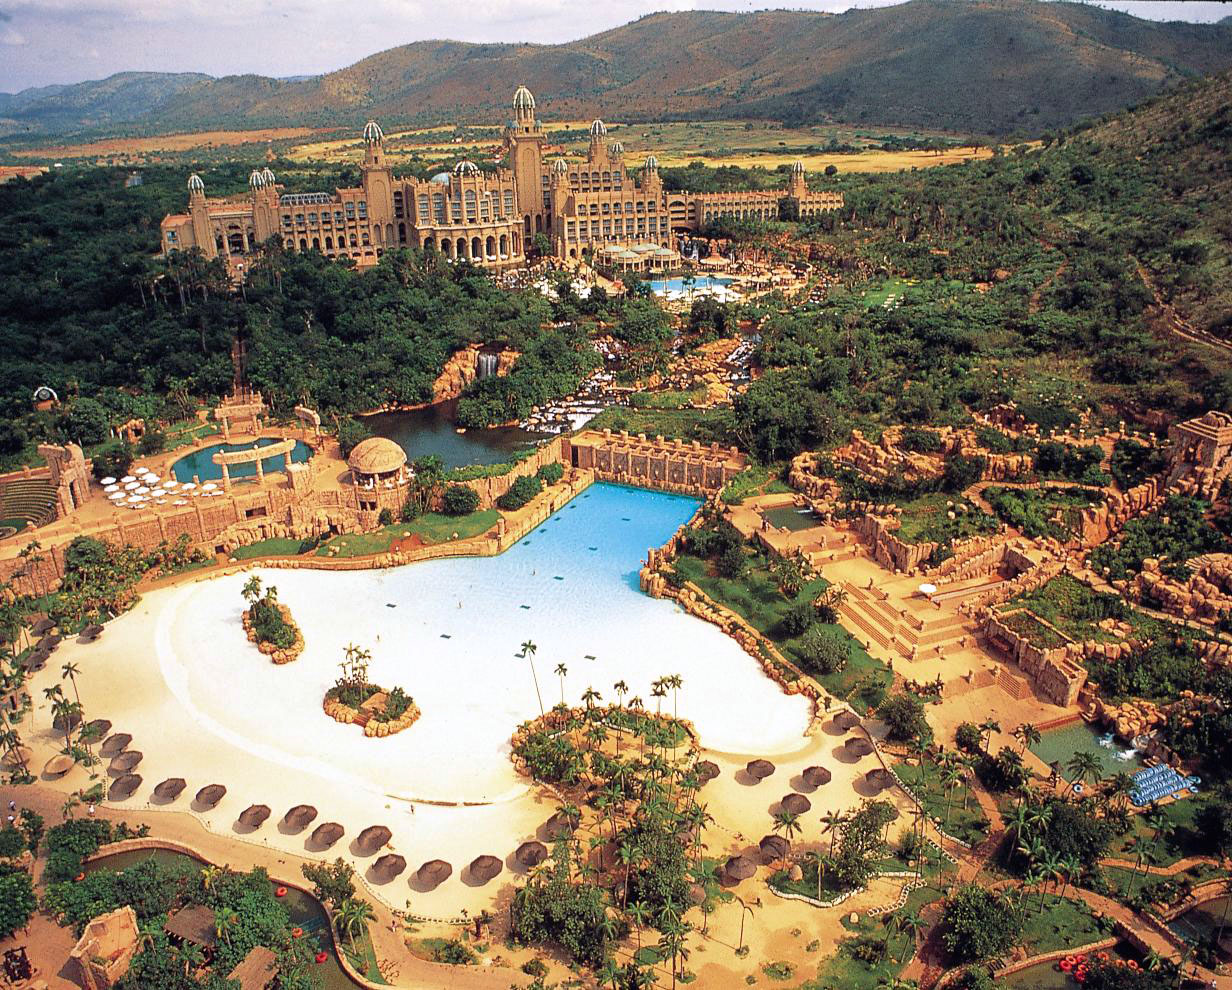 Top down view of Sun City